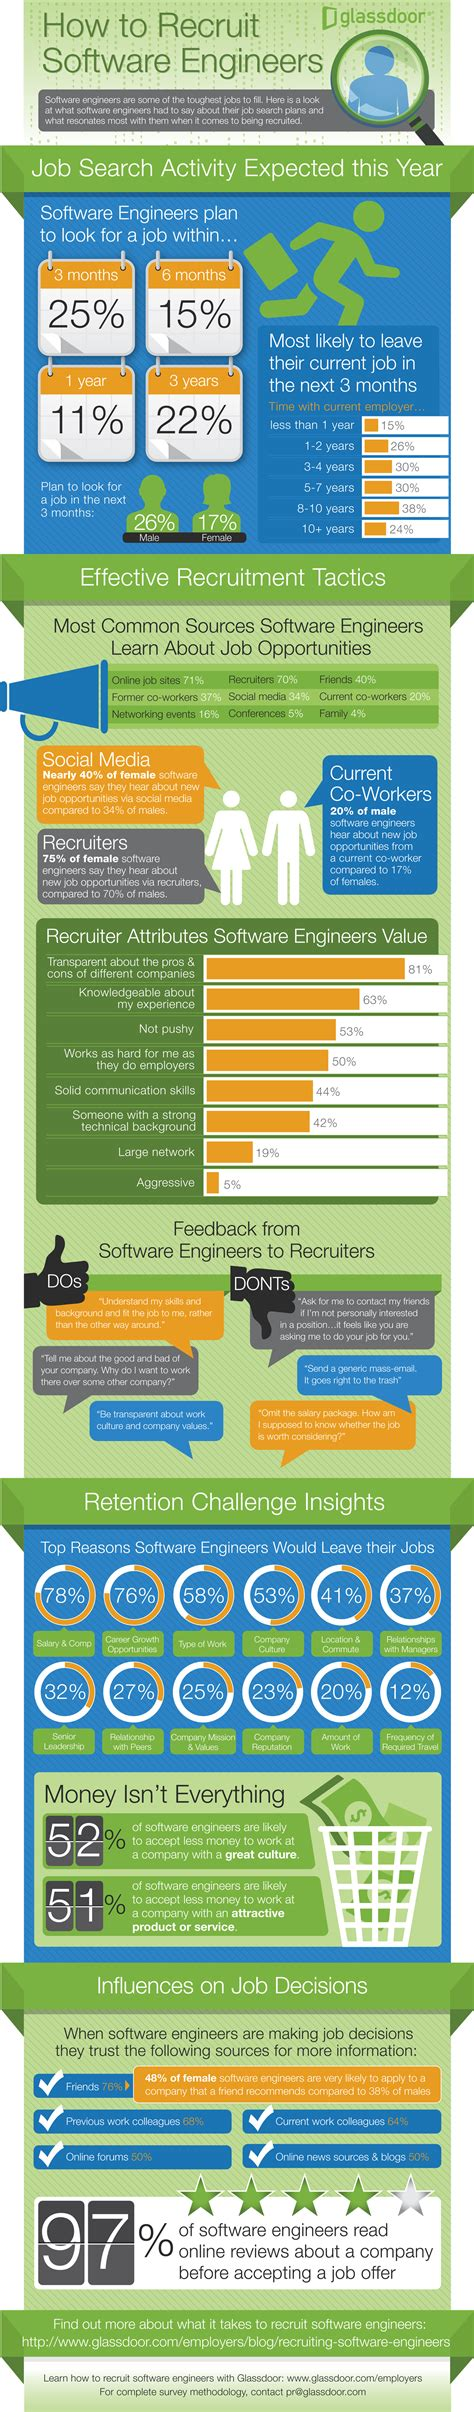 Mba Courses Useful For Software Engineers by Recruiting Software Engineers